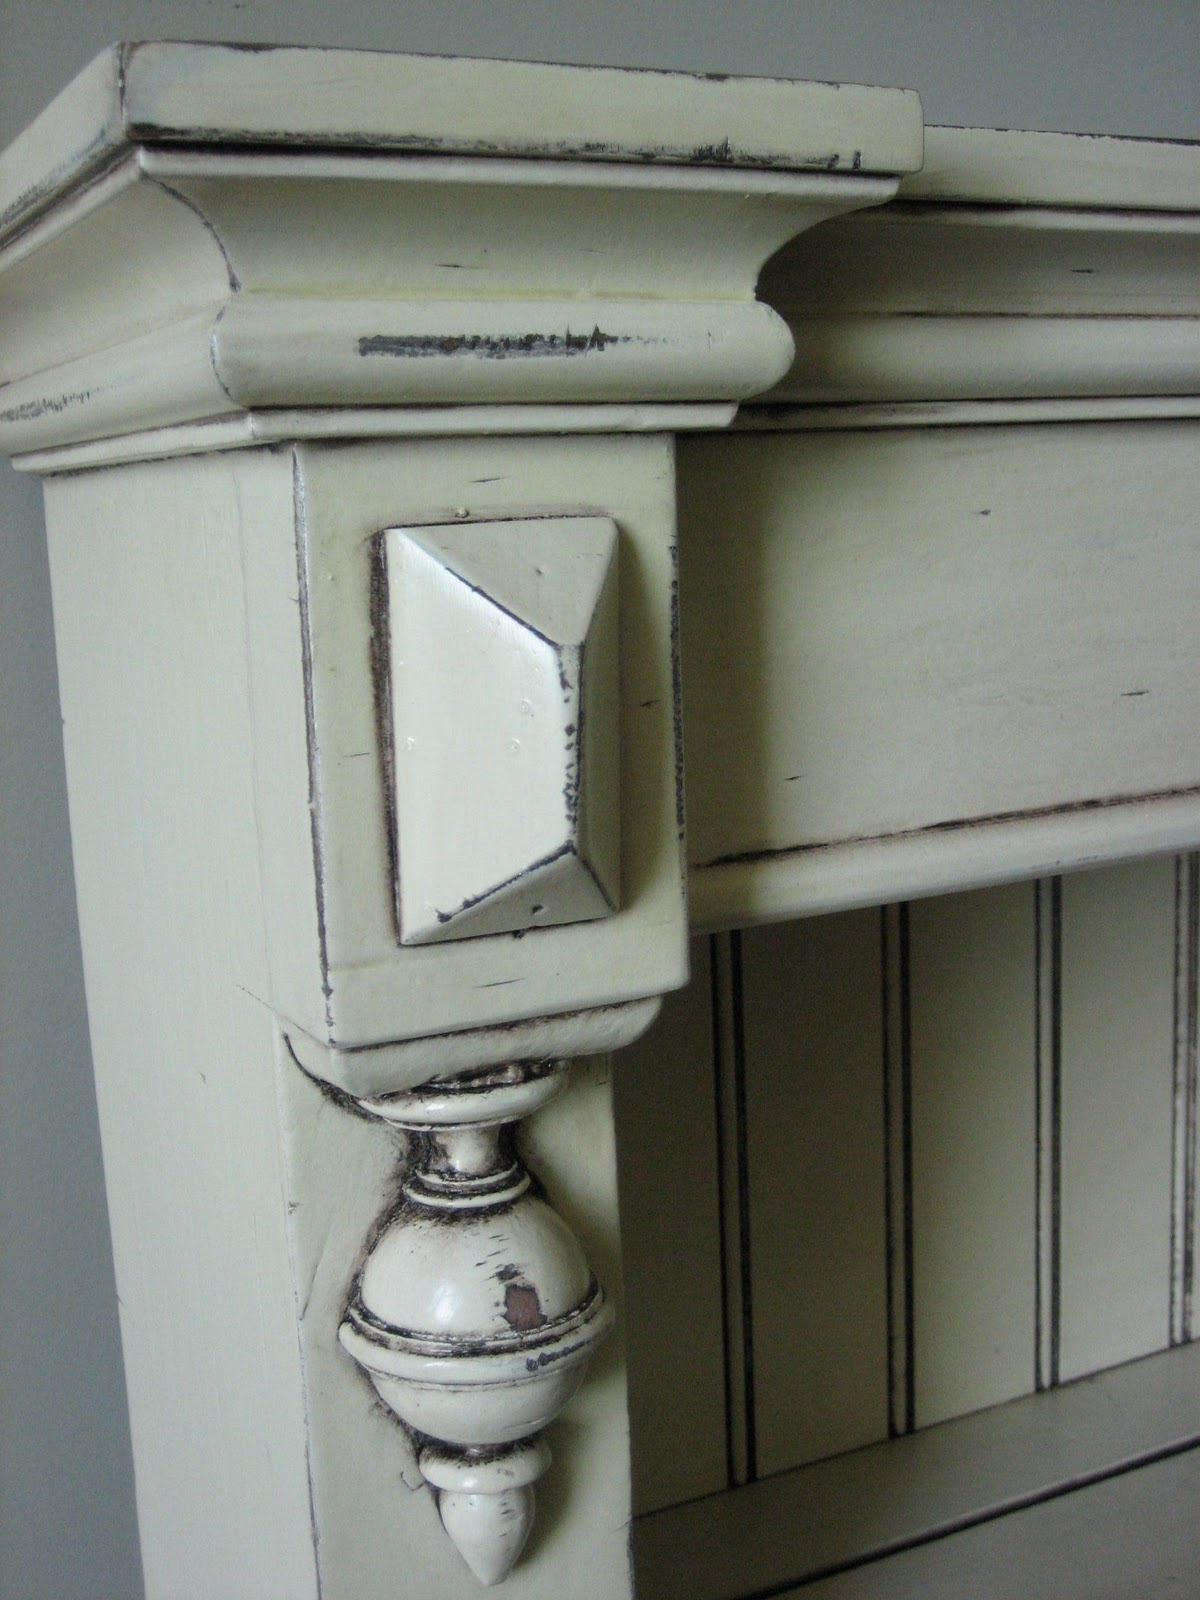 European paint finishes shabby french wall shelves distressed and glazed for a vintage french feel tall shelf measures 375 tall x 27 wide top two shelves are 45 deep and bottom shelf is 55 deep amipublicfo Image collections